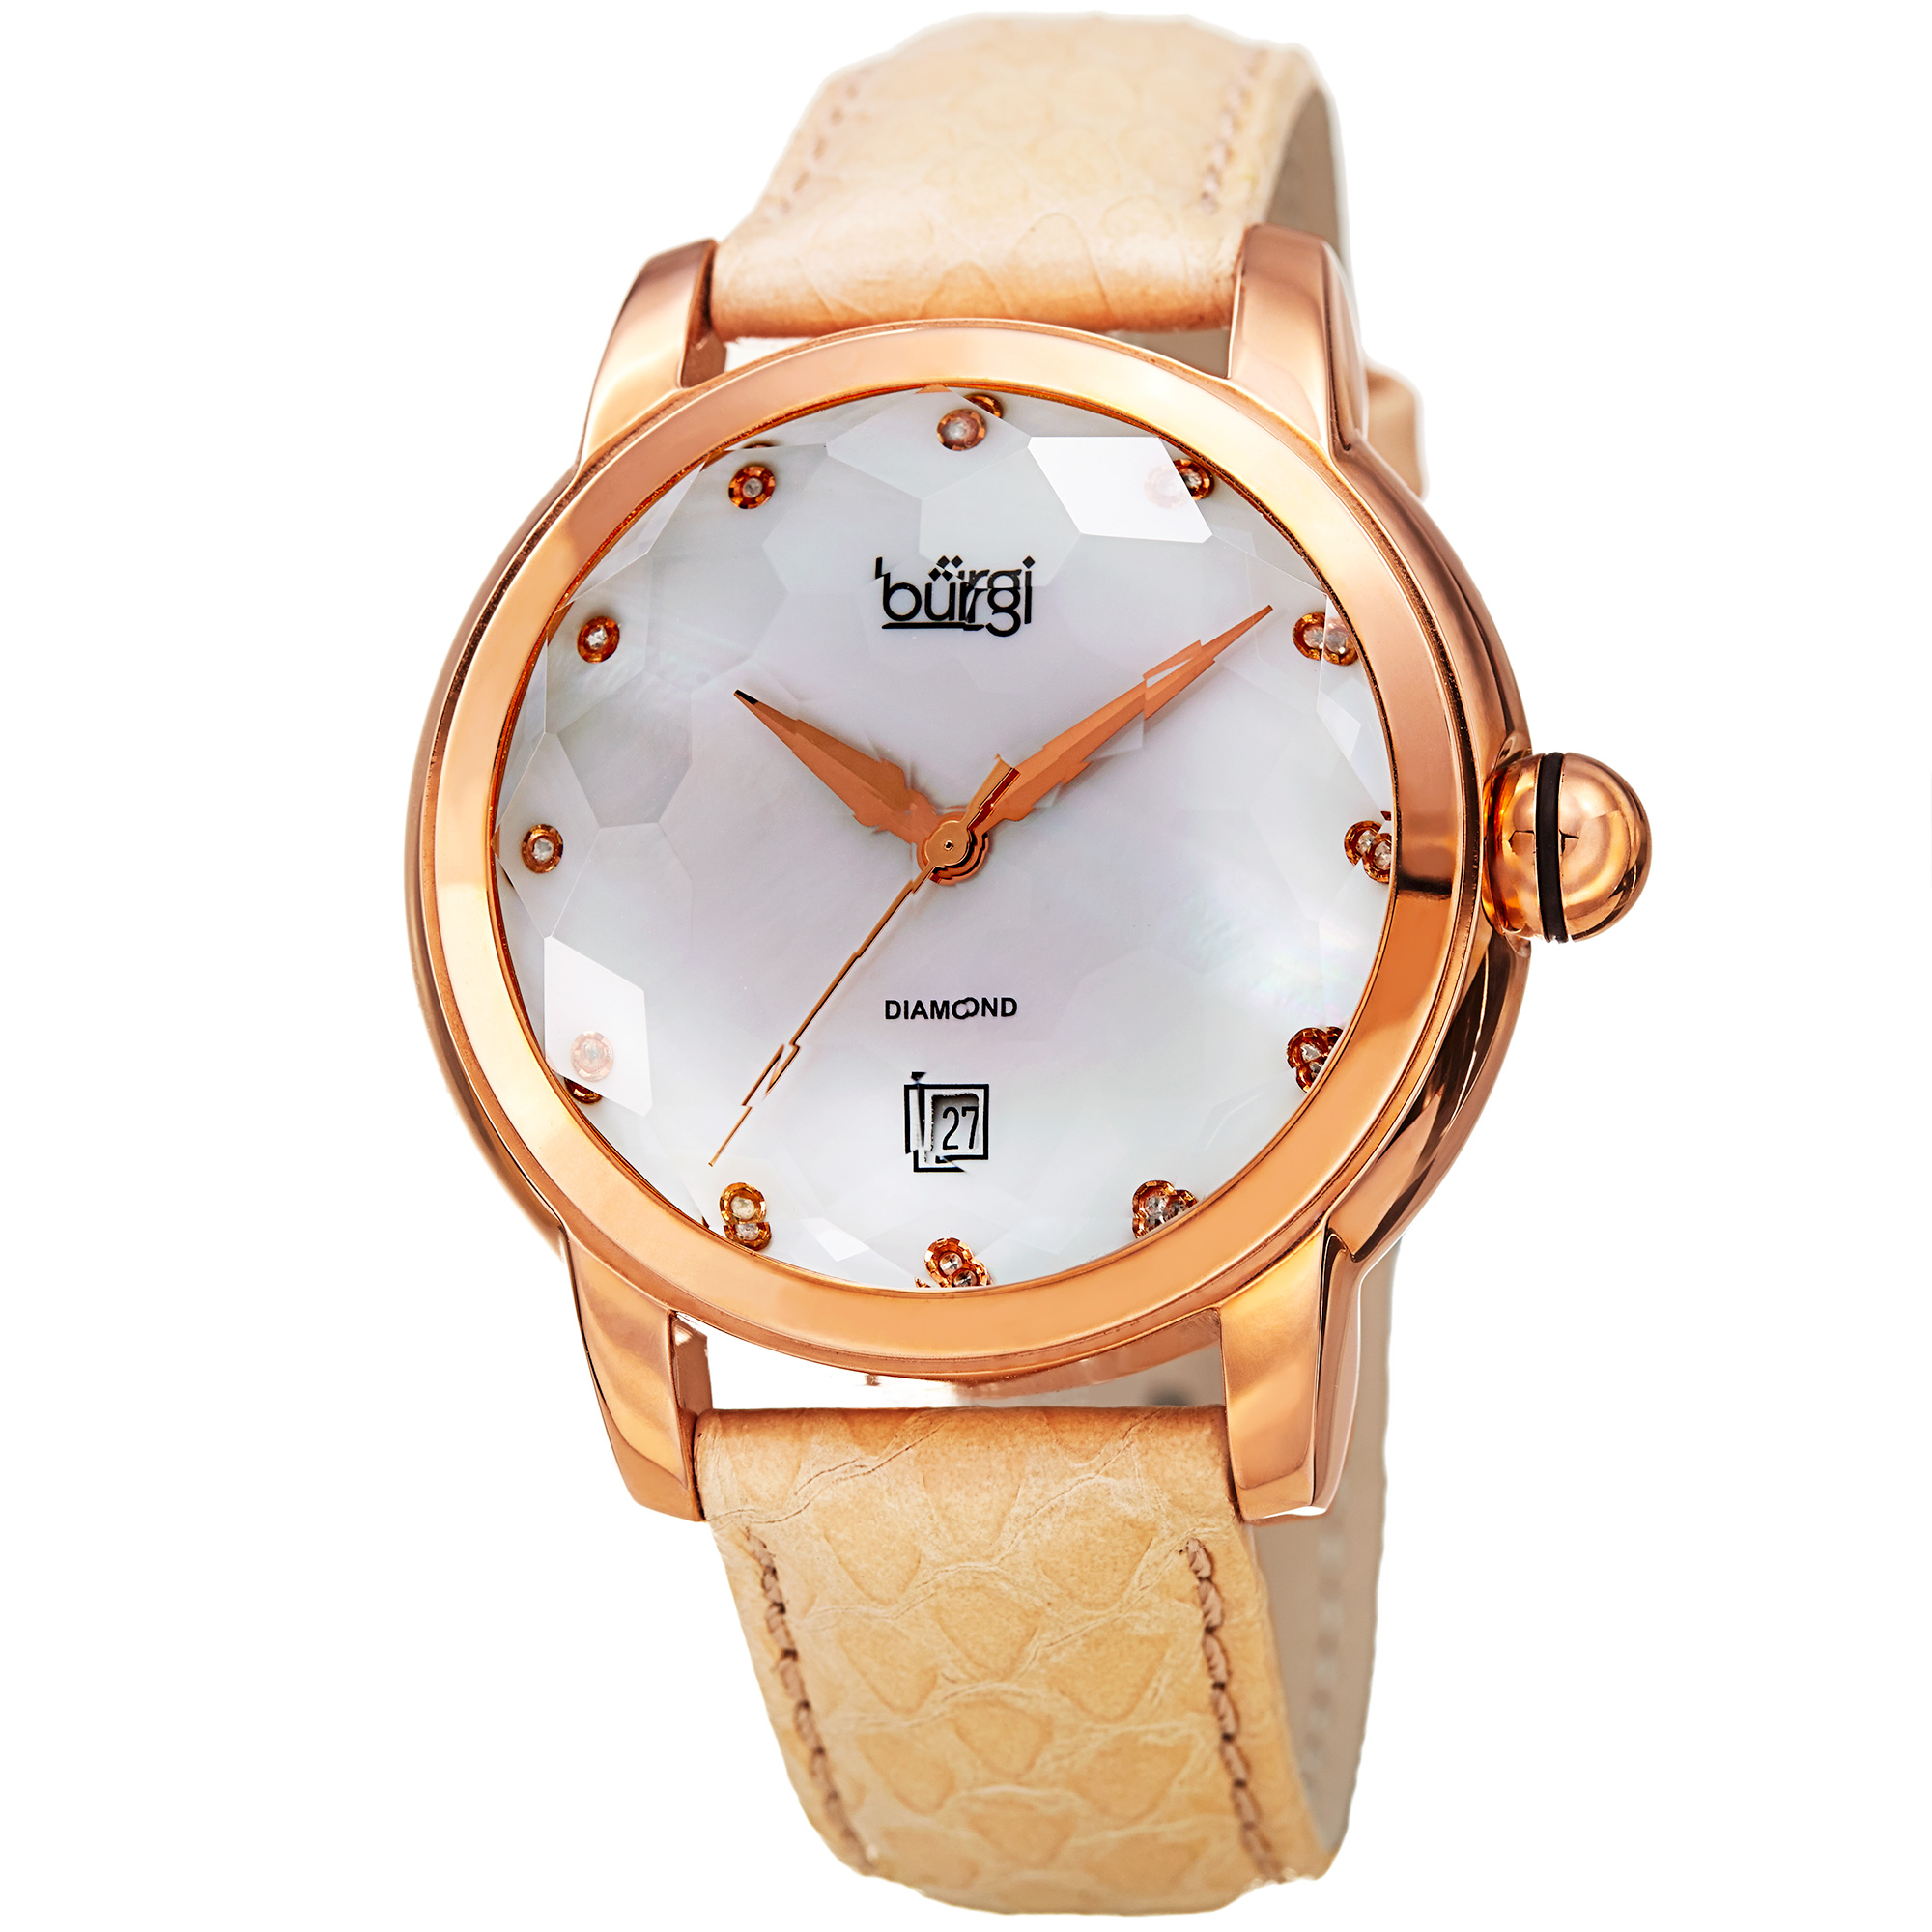 Burgi Women's Diamond Quartz Date Watch